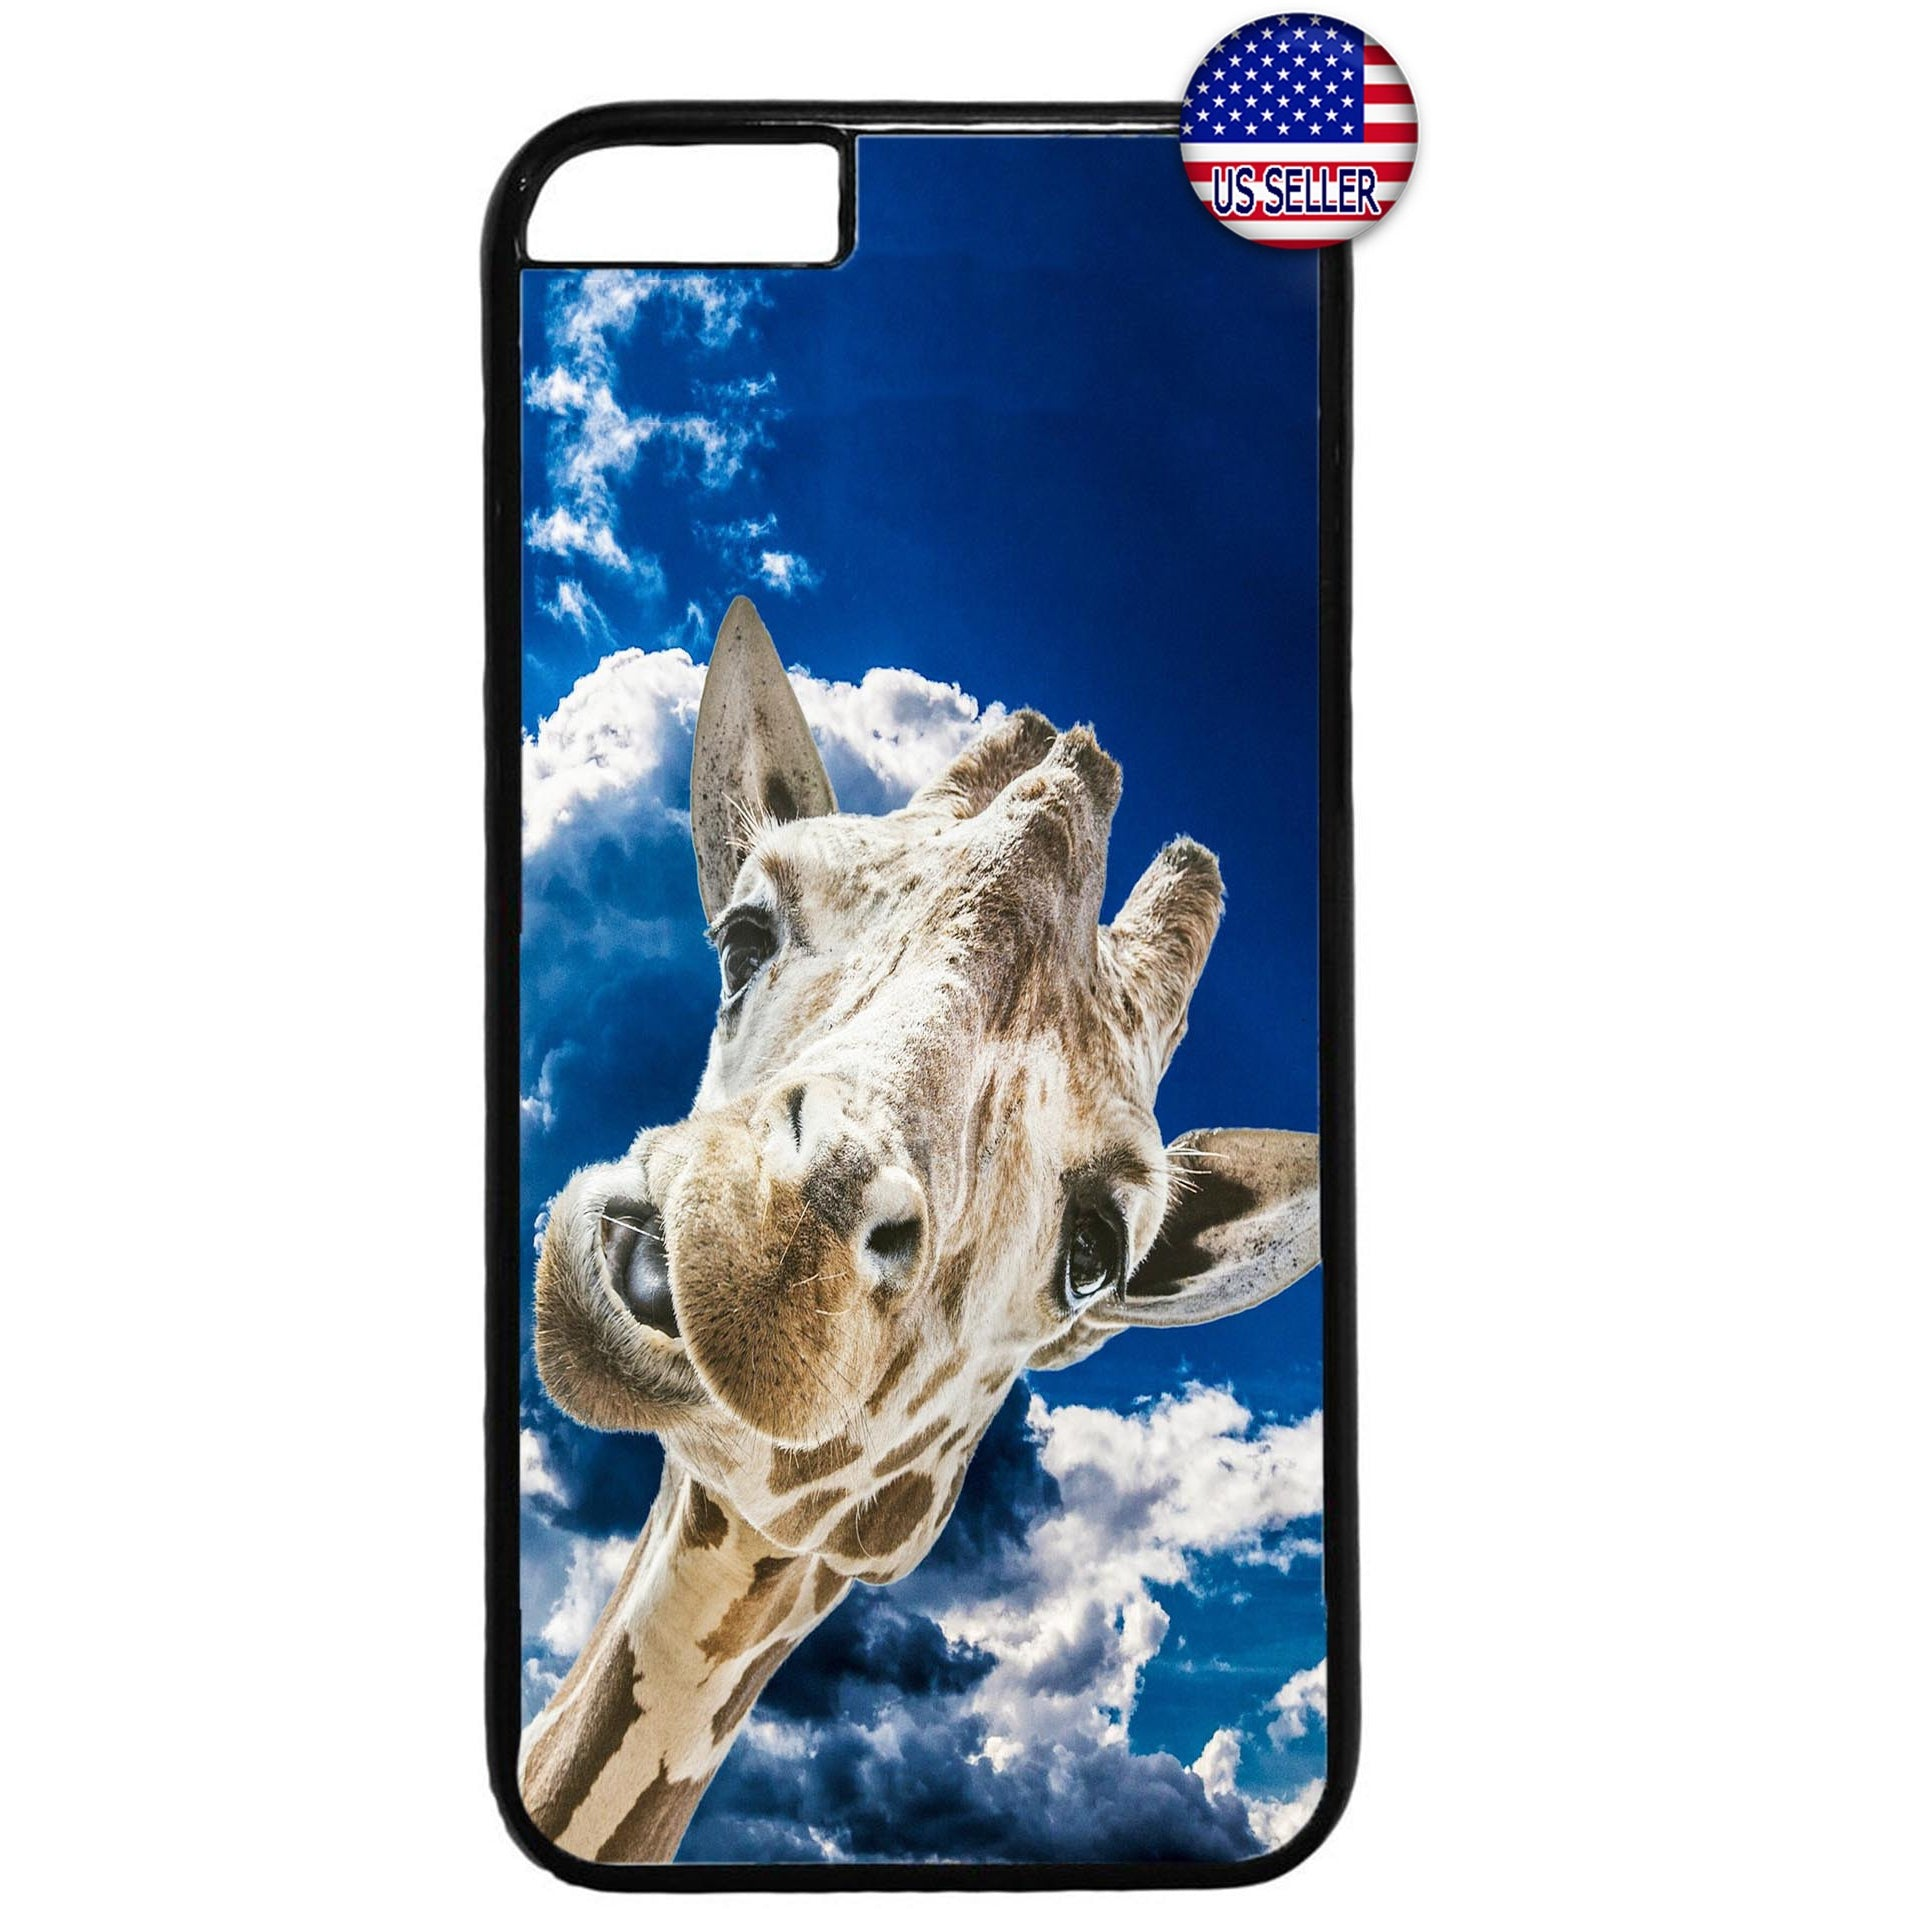 Funny Wild Giraffe Zoo Rubber Case Cover For Iphone